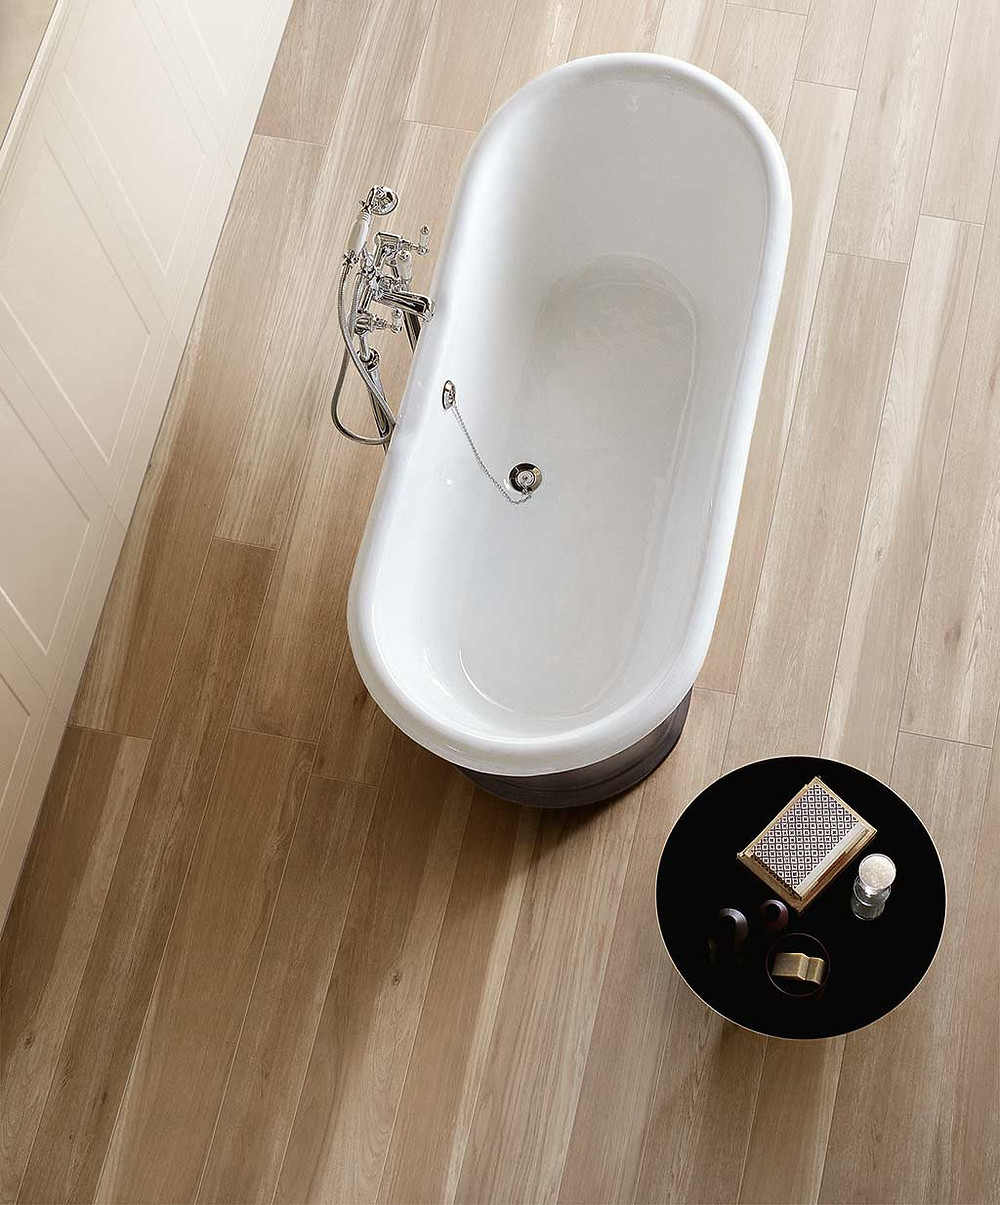 you can have the wooden look without fear of water damage